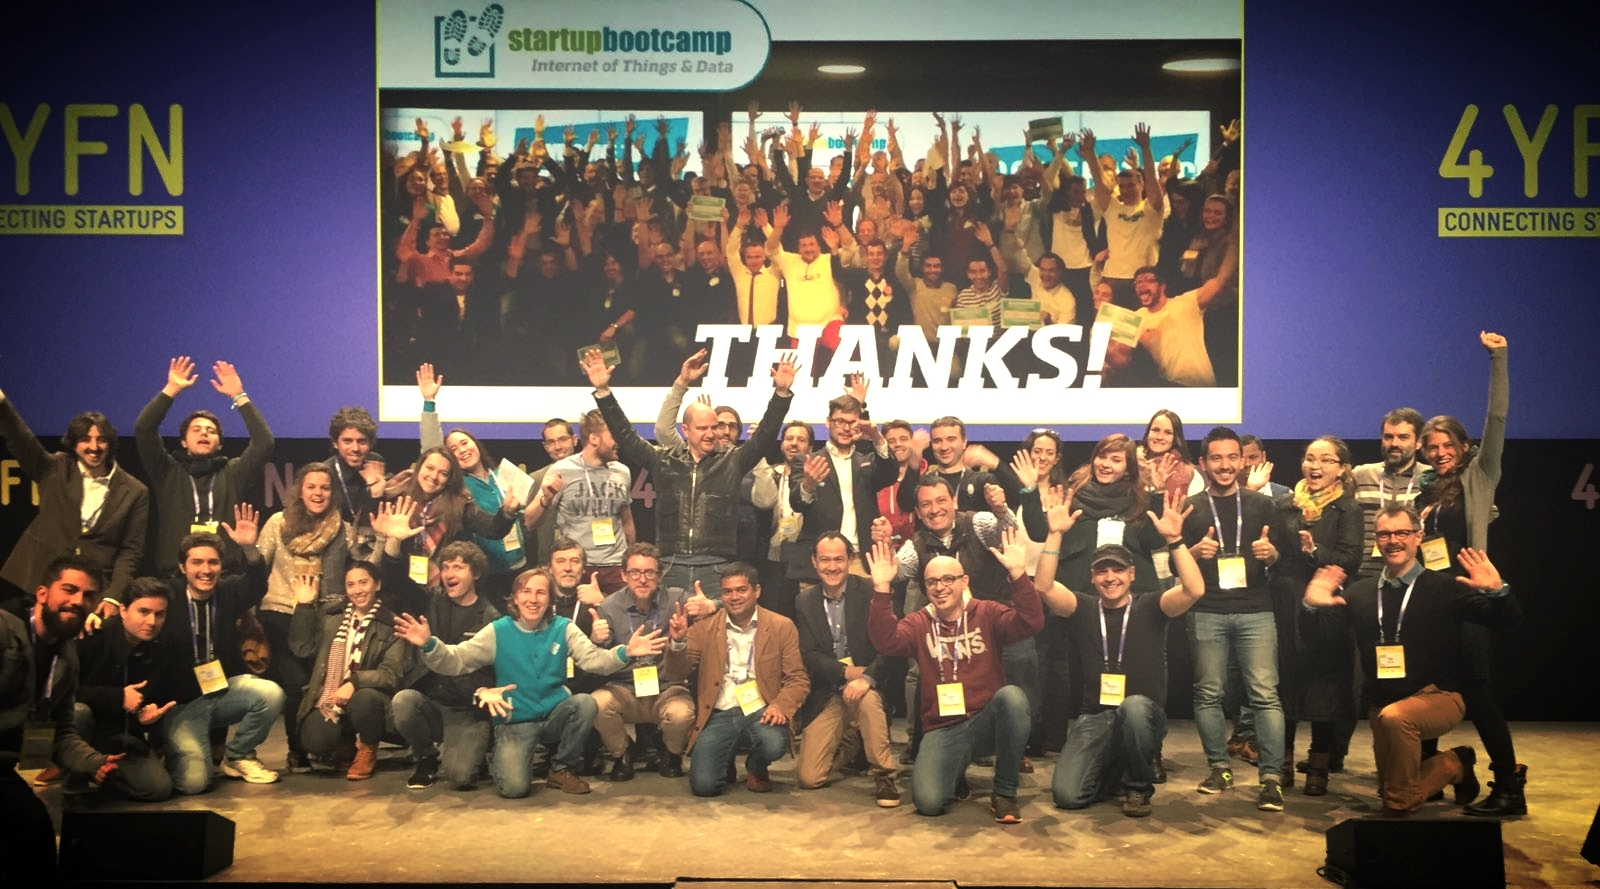 Celebrating the phenomenal pitches of the 11 startup companies participating in Demo Day at 4YFN - Mobile World Congress.